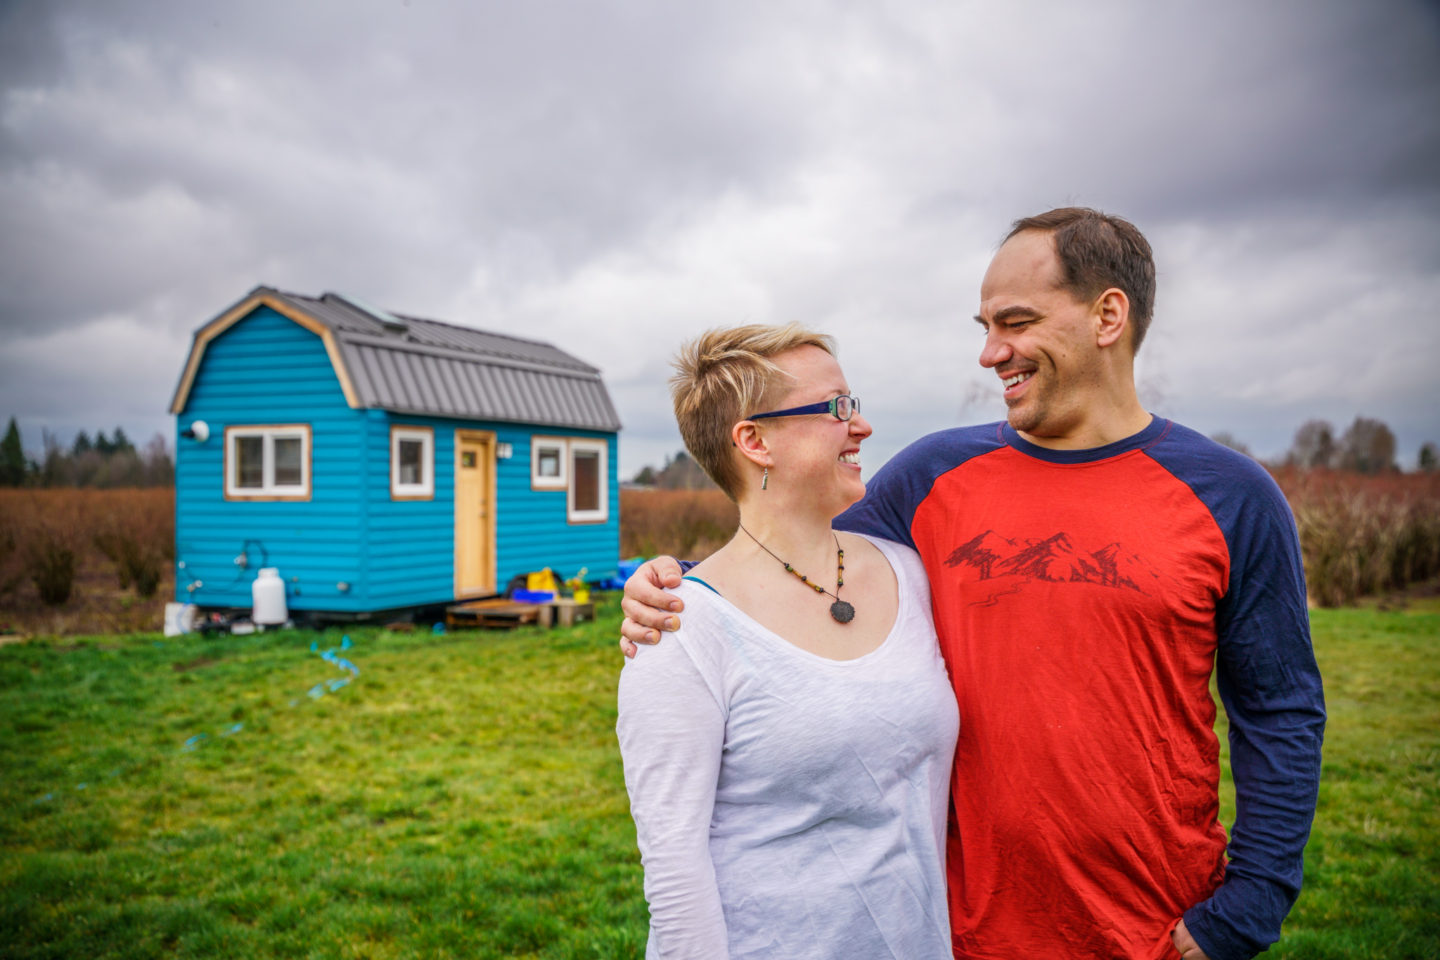 Laura & Rory's Little Blue Vancouver Tiny House